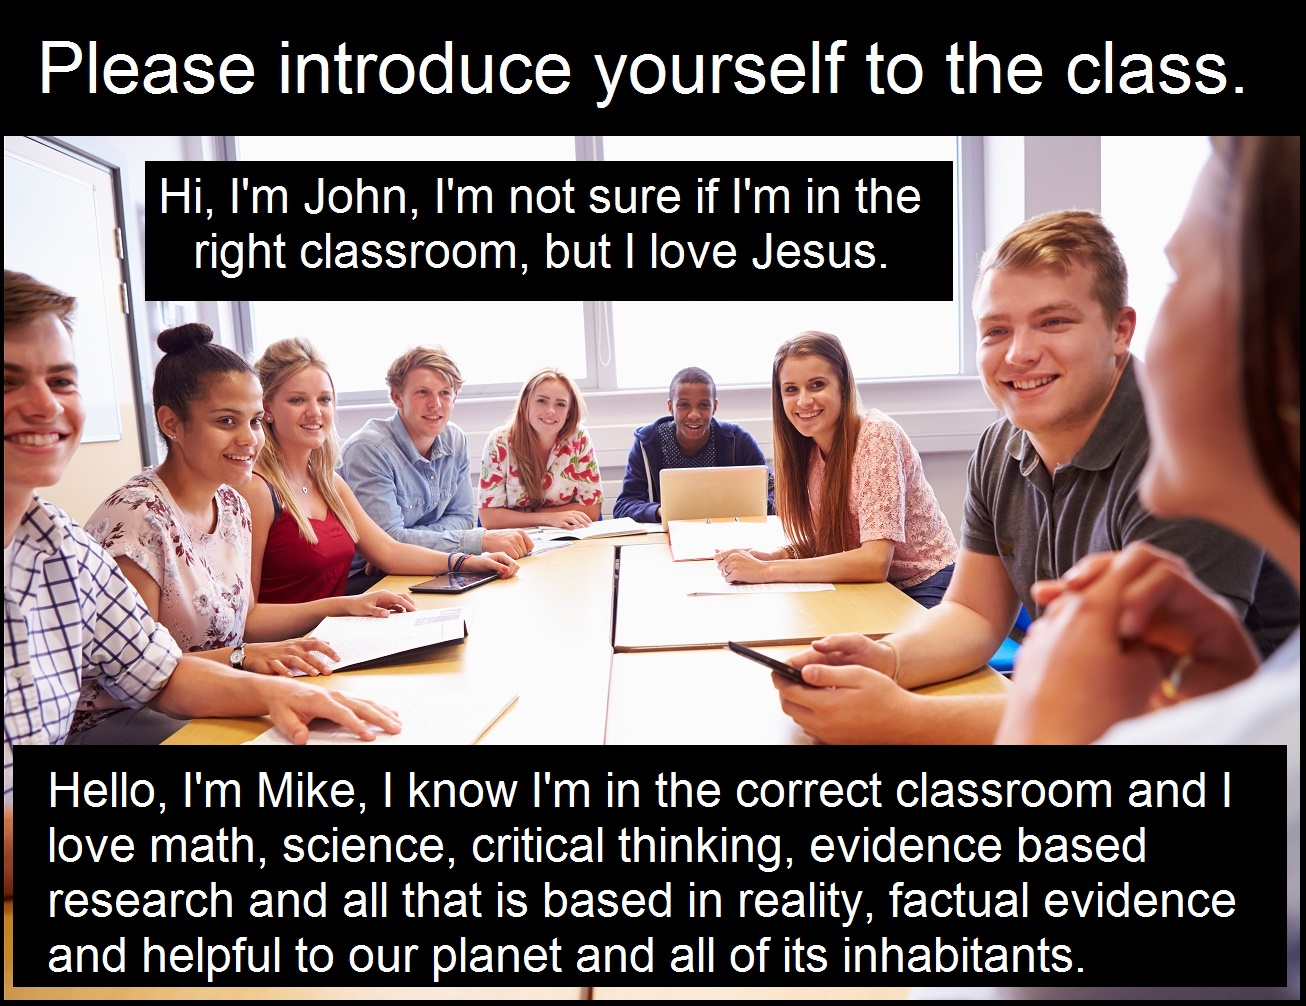 Hello, I'm Mike, I know I'm in the correct classroomand I love math,science, critical thinking, evidence based research and all that is based in reality, factual evidence andhelpful to our planet andall of its inhabitants.